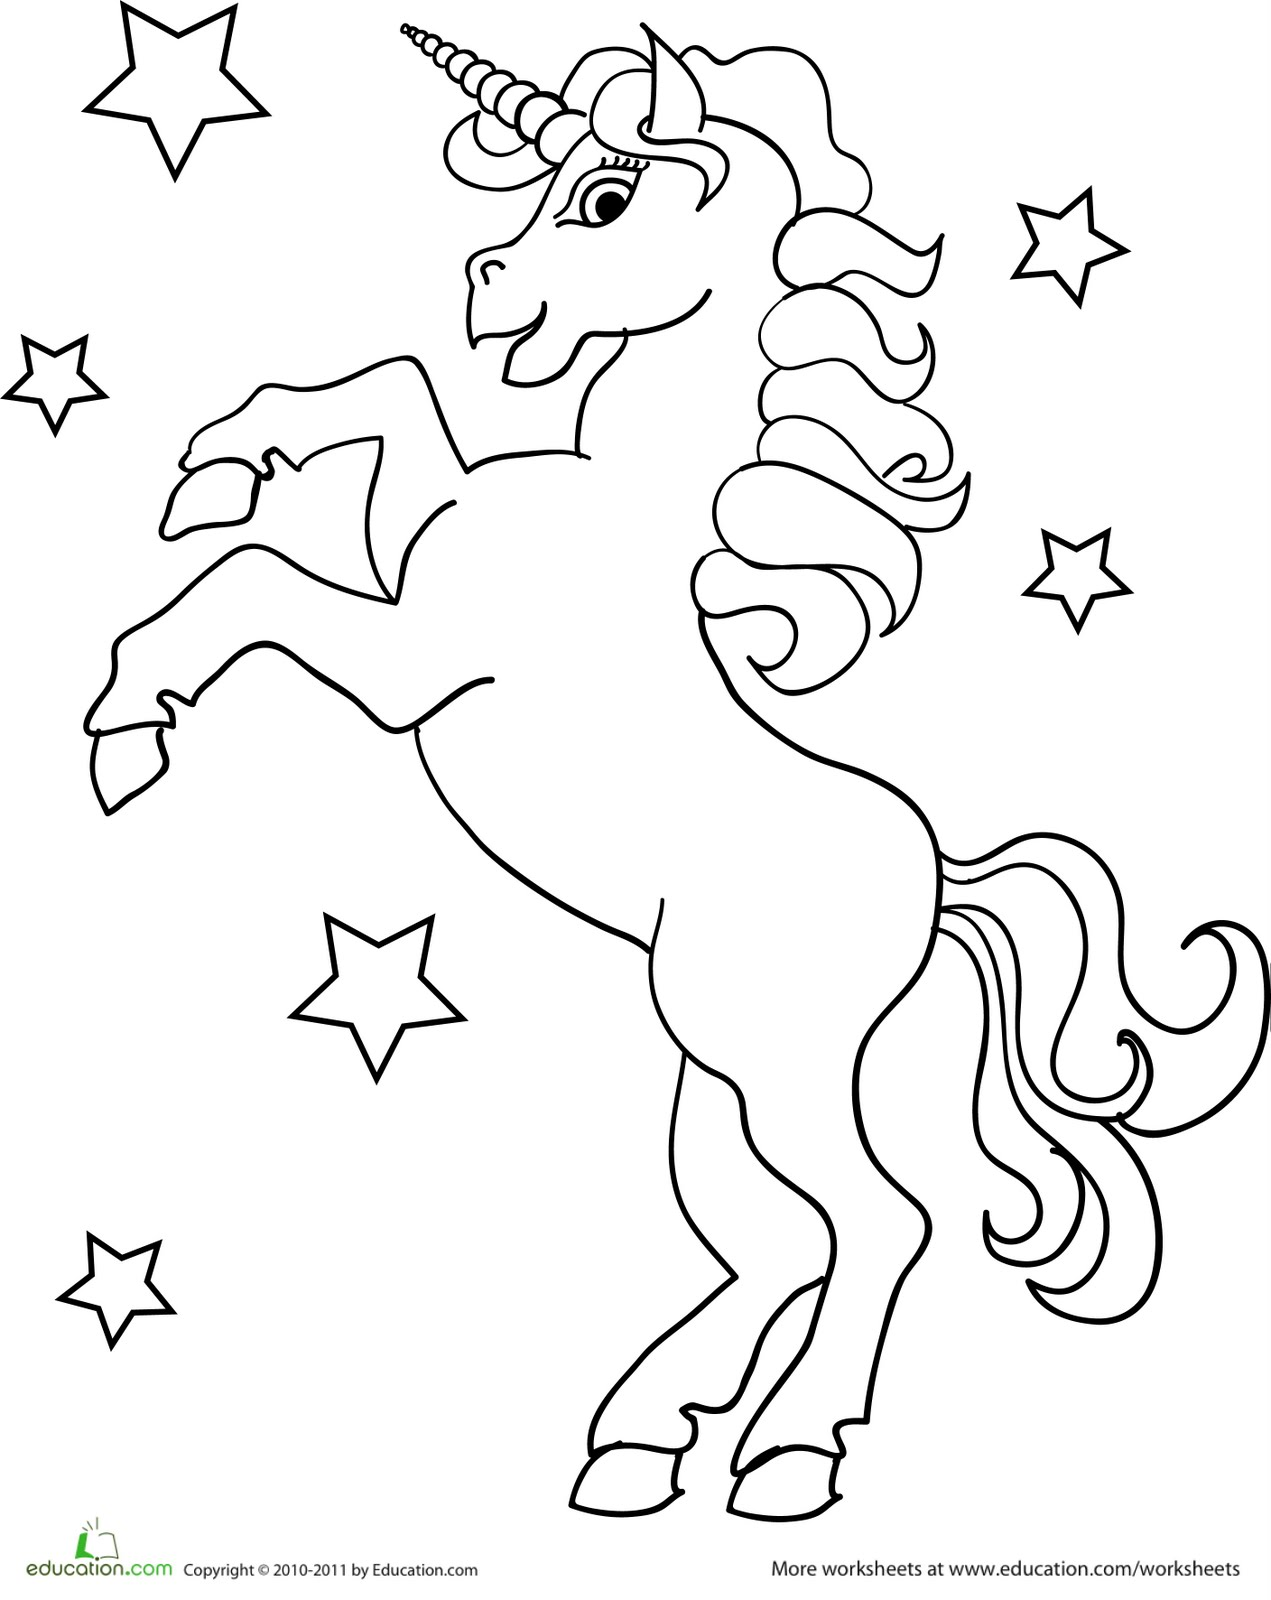 Unicorn Maze Coloring Pages